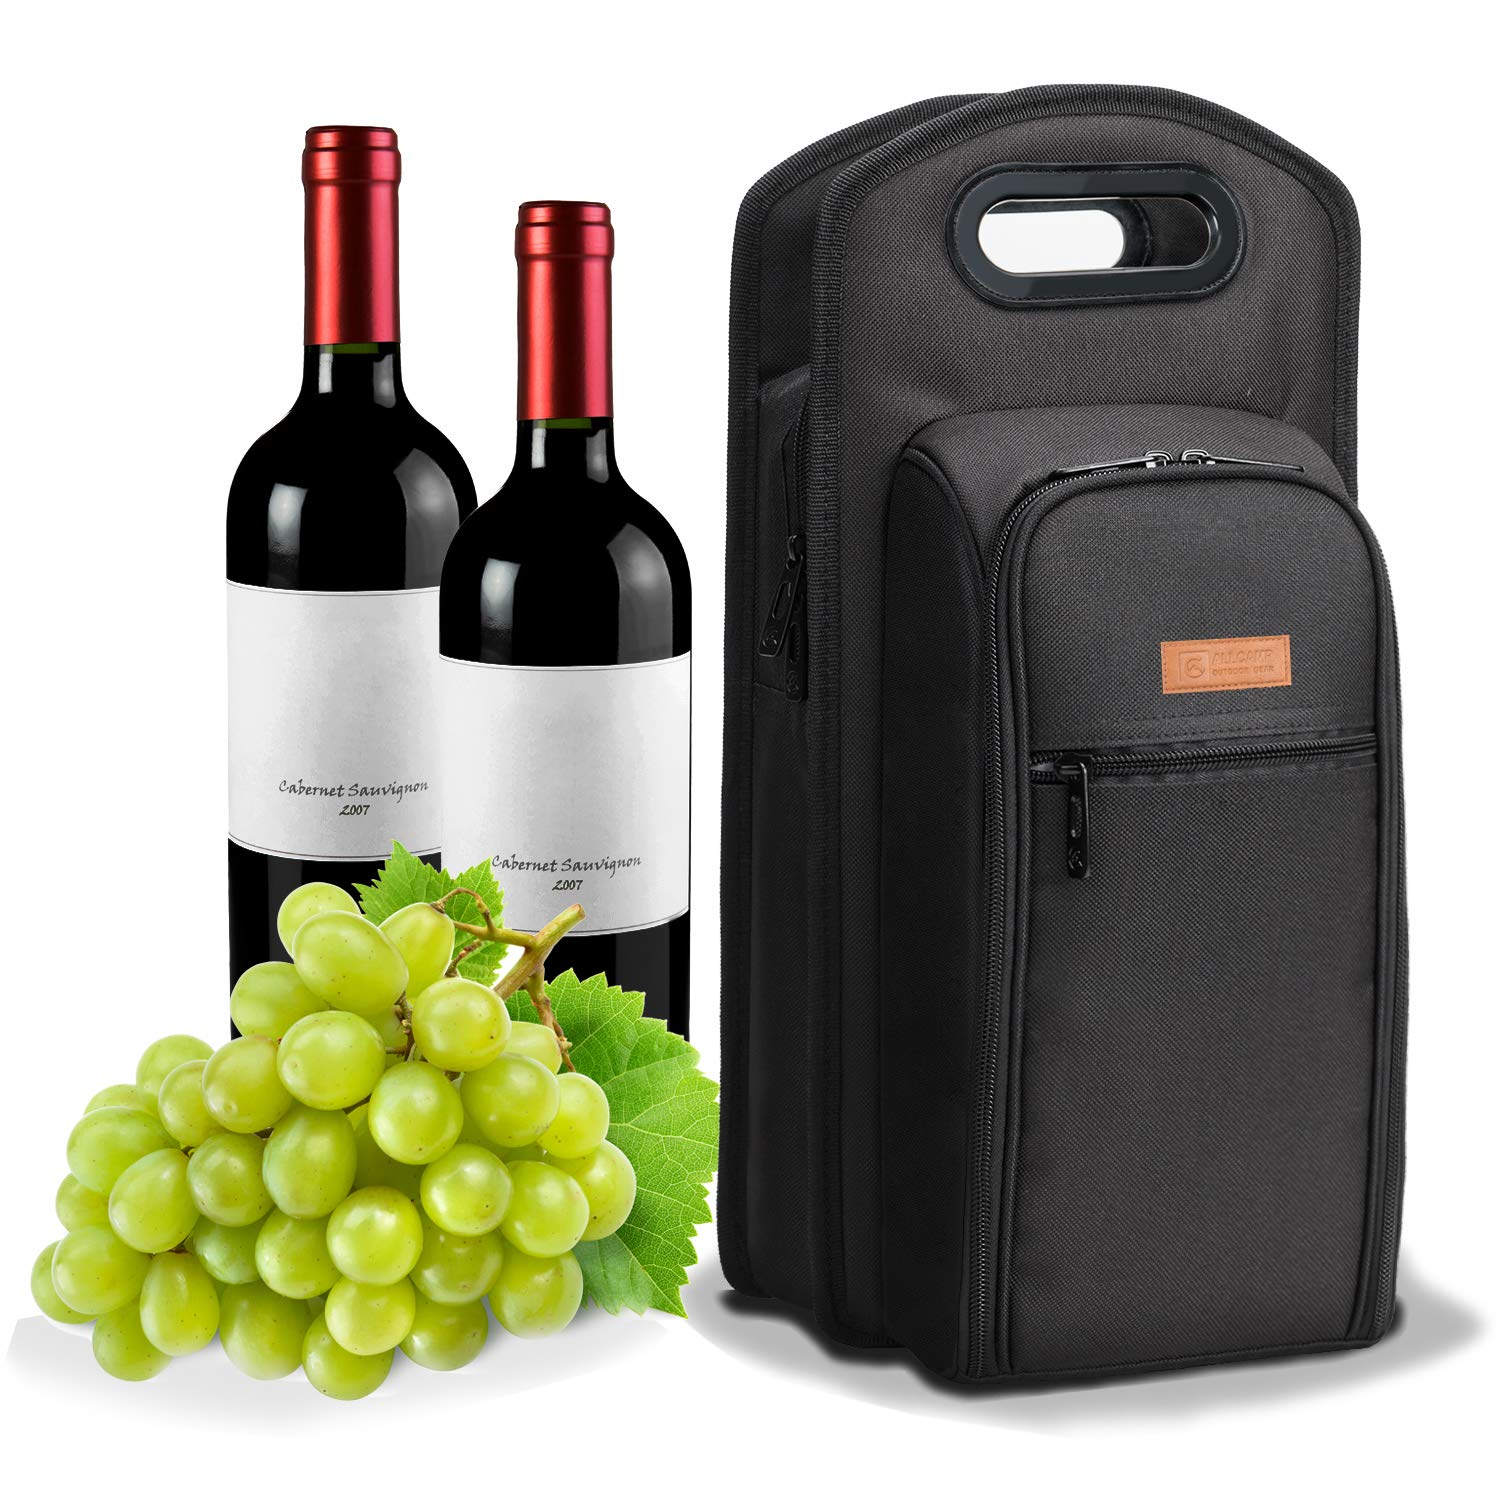 ALLCAMP 9 Piece Wine Travel Bag and Insulated Wine Carrier Tote Carrying Cooler Bag with Handle,Great Gift for Wine Lover, by ALLCAMP OUTDOOR GEAR